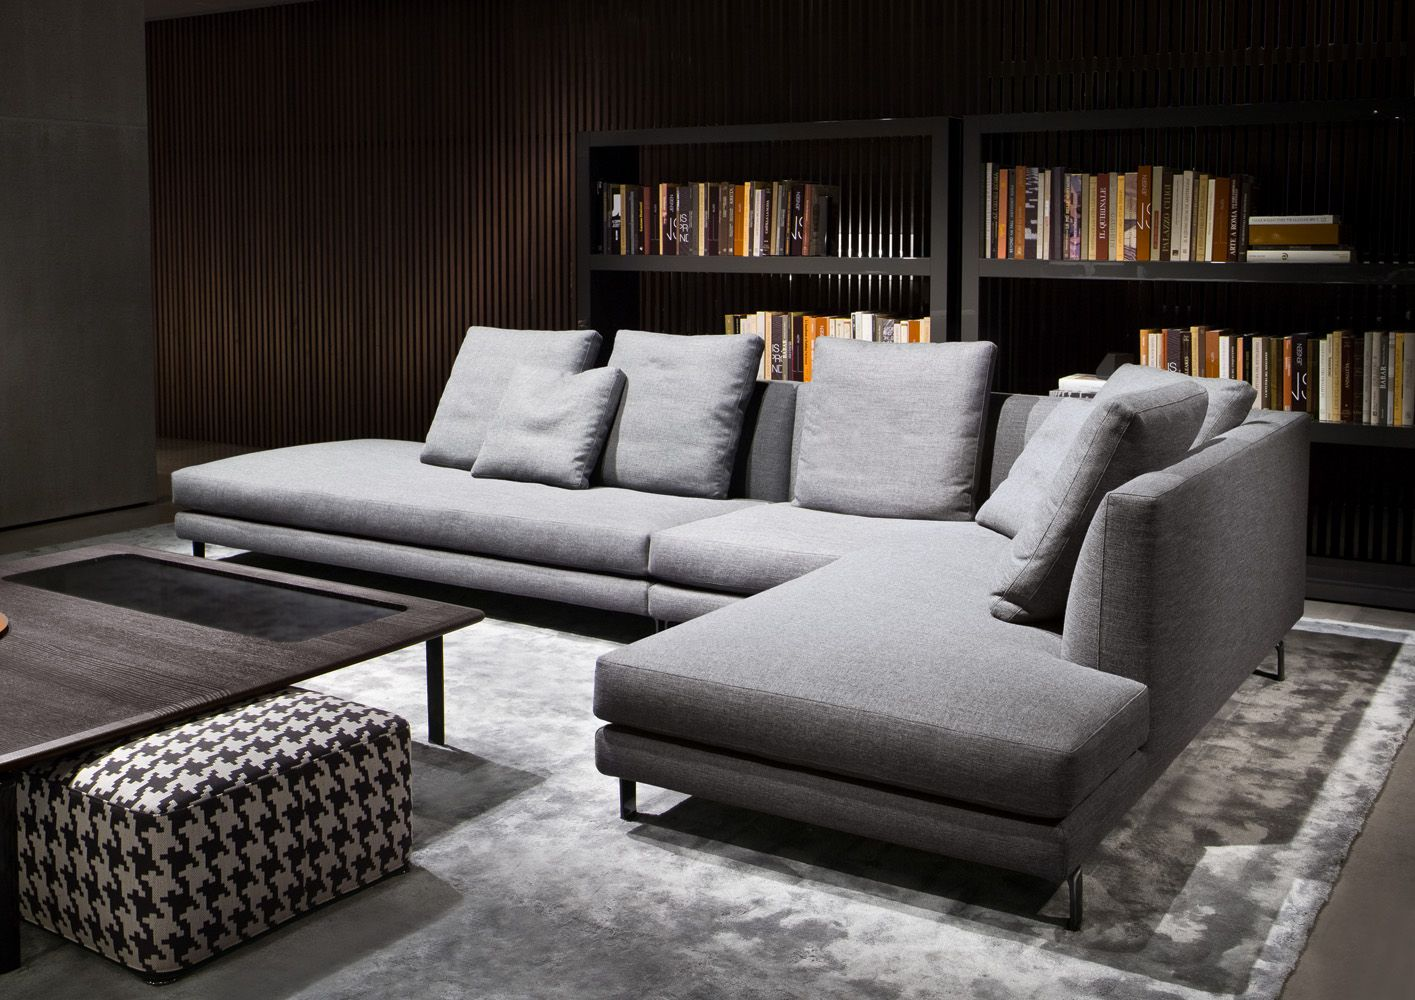 20 Modish Minotti Sofas And Seating Systems Minotti Sofa Furniture Furniture Design Modern